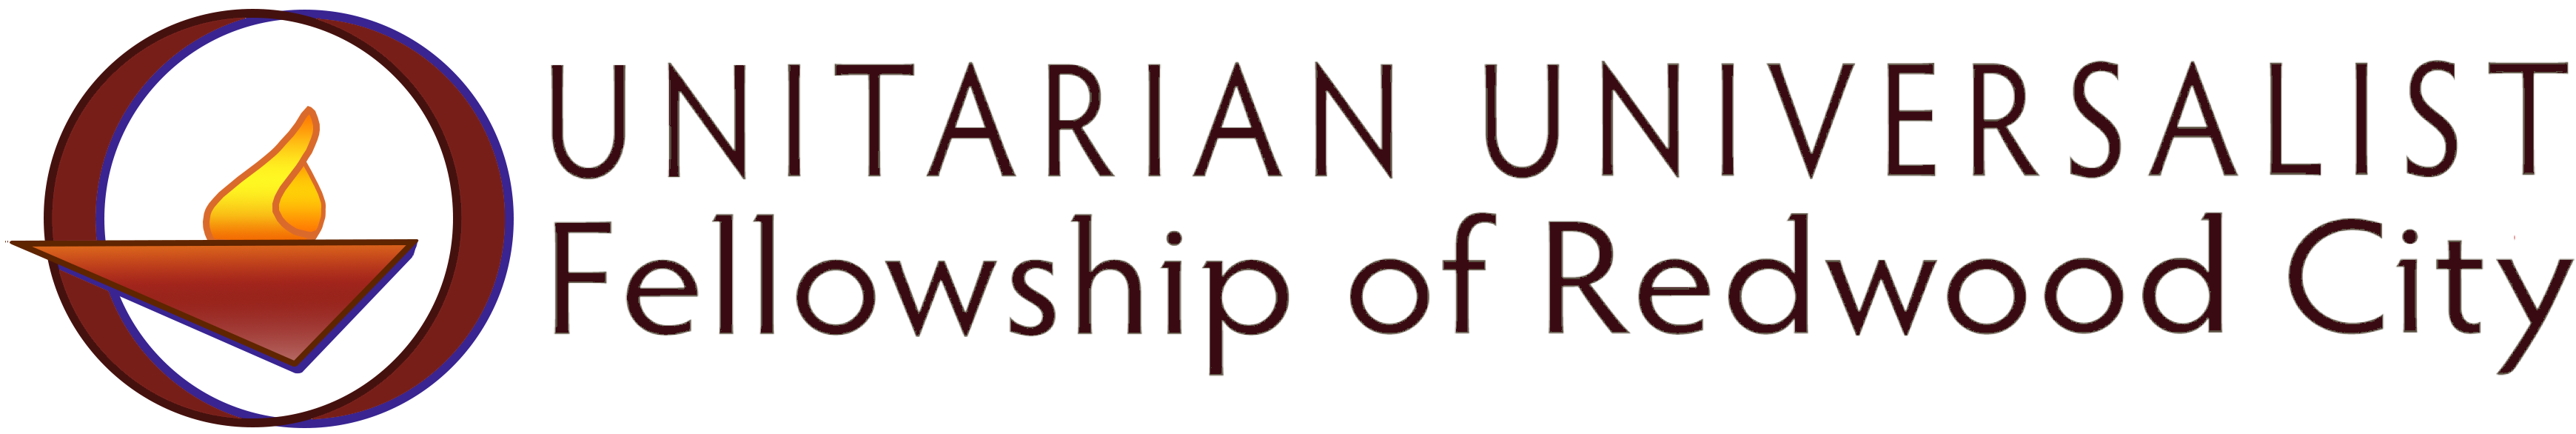 Unitarian Universalist Fellowship of Redwood City Logo